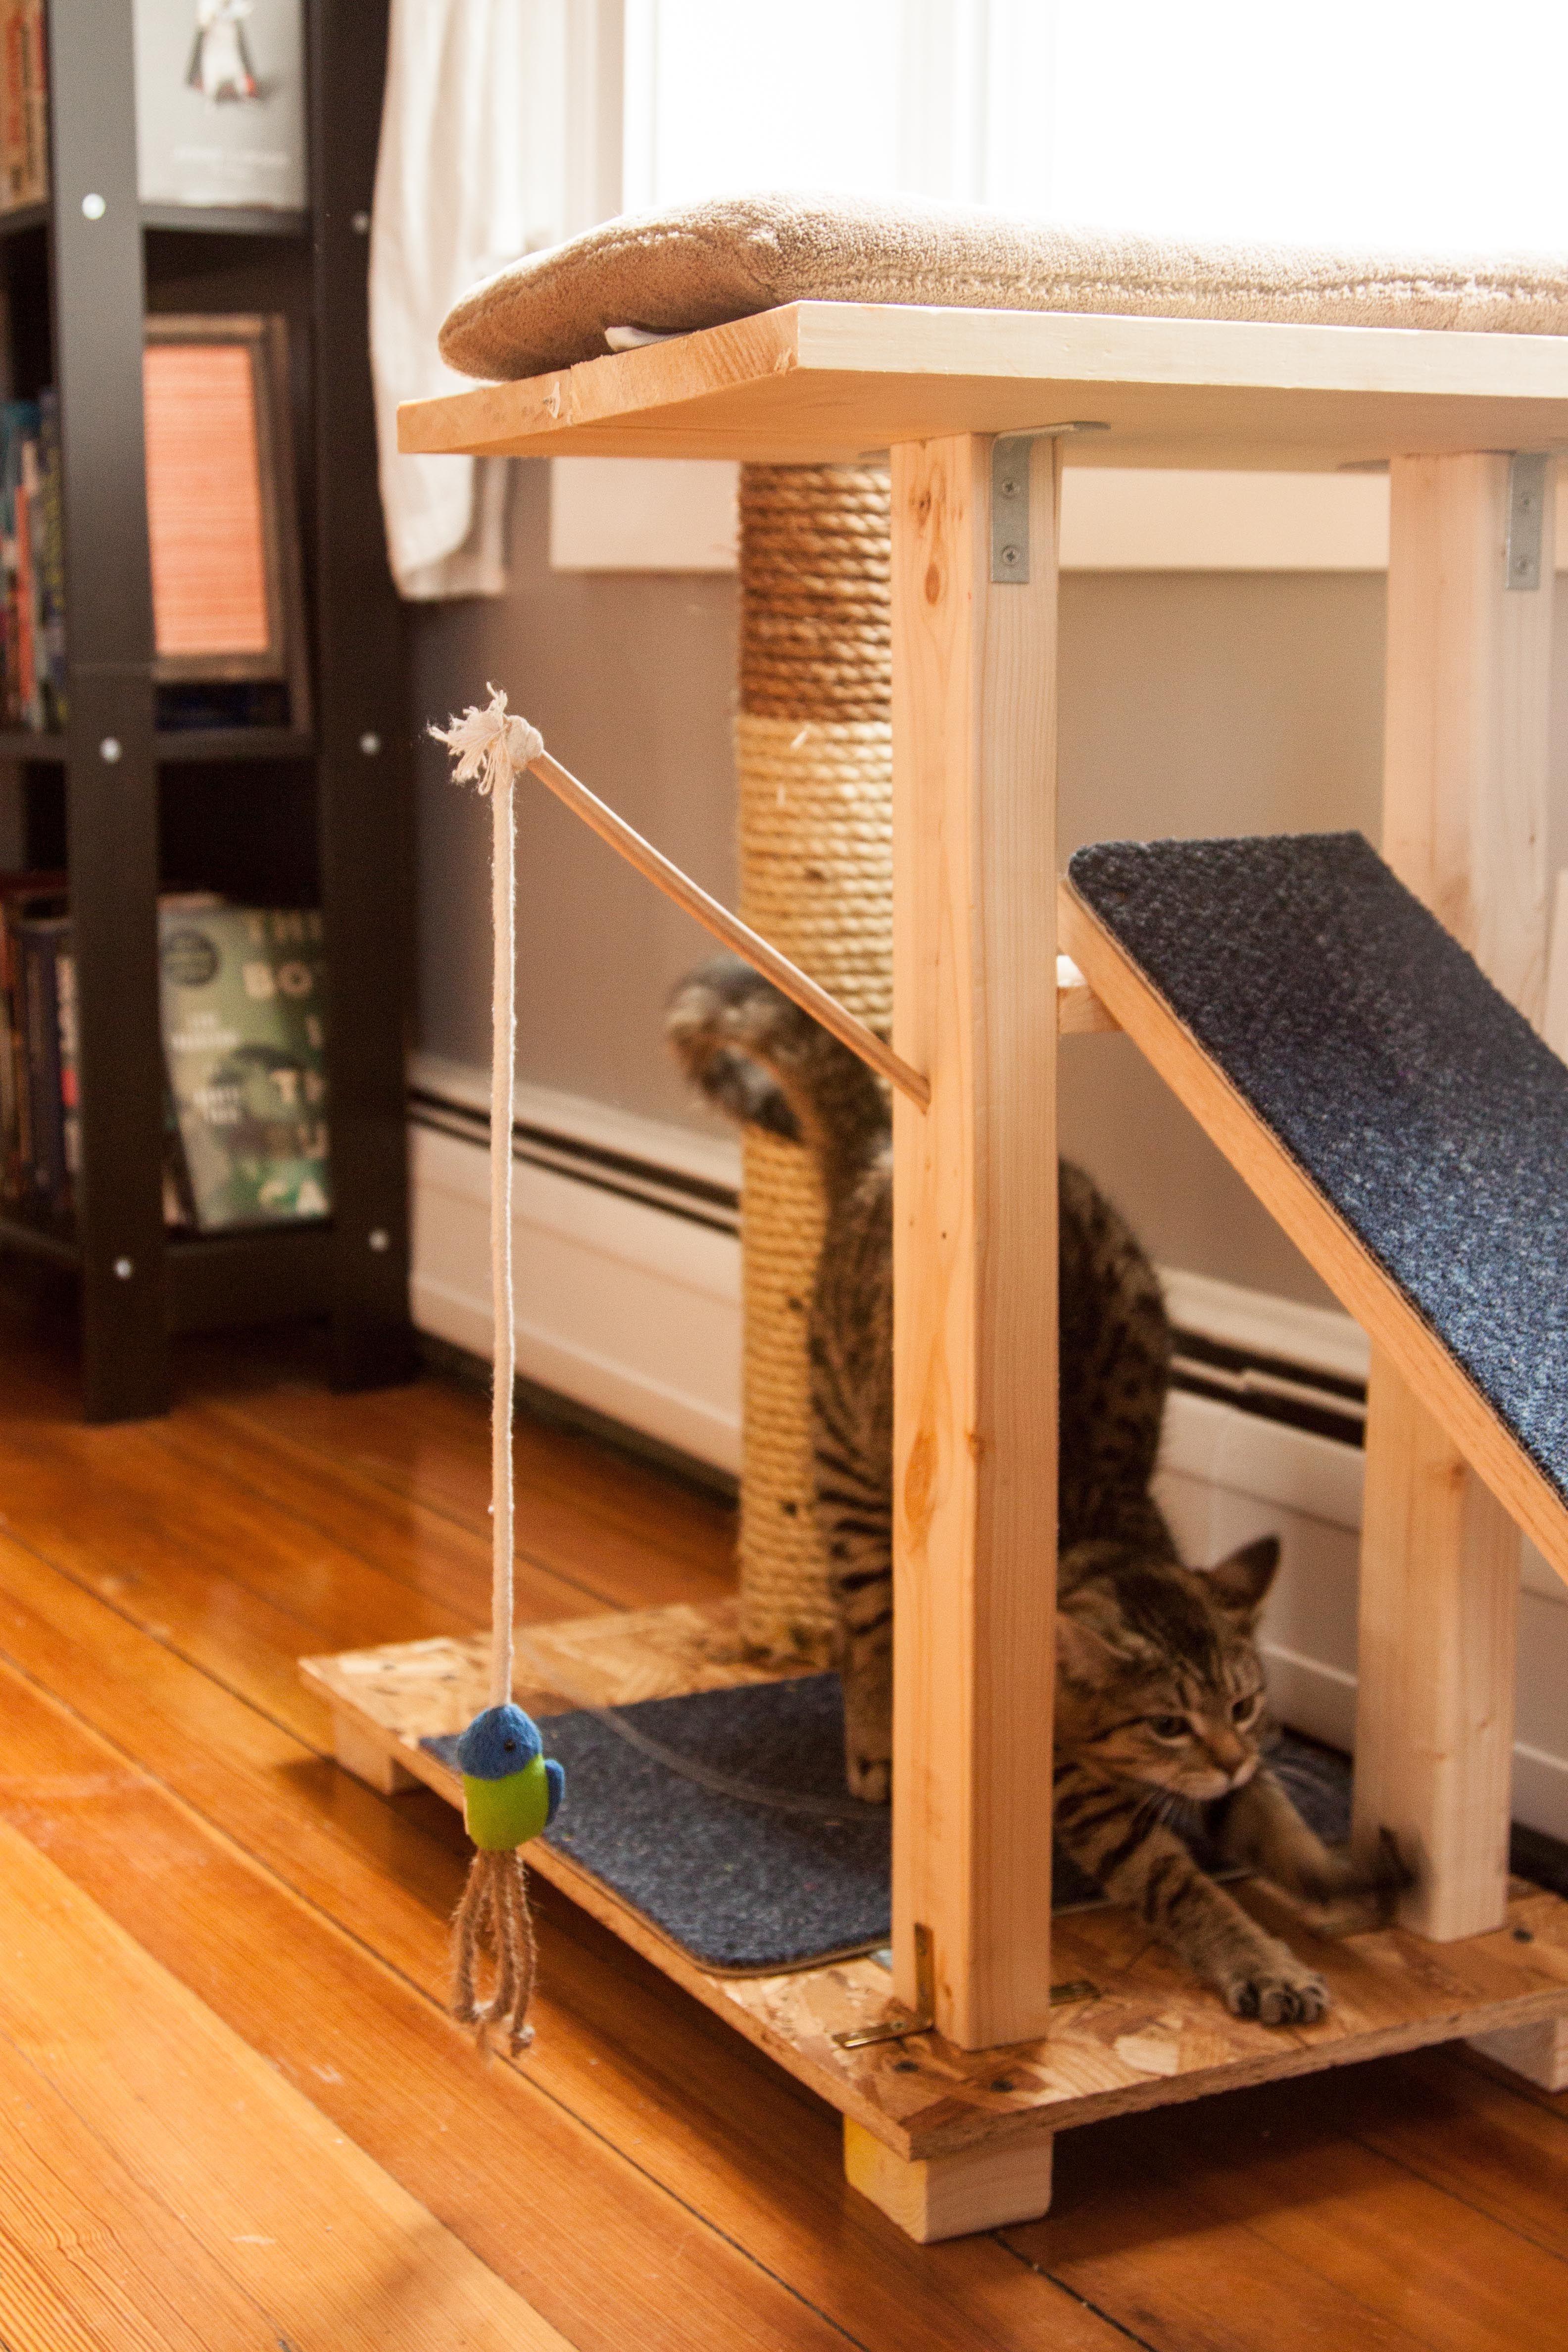 our diy cat condo   diy ideas   pinterest  cat  hammock   catsincare  our diy cat condo   diy ideas   pinterest  cat  hammock      rh   pinterest